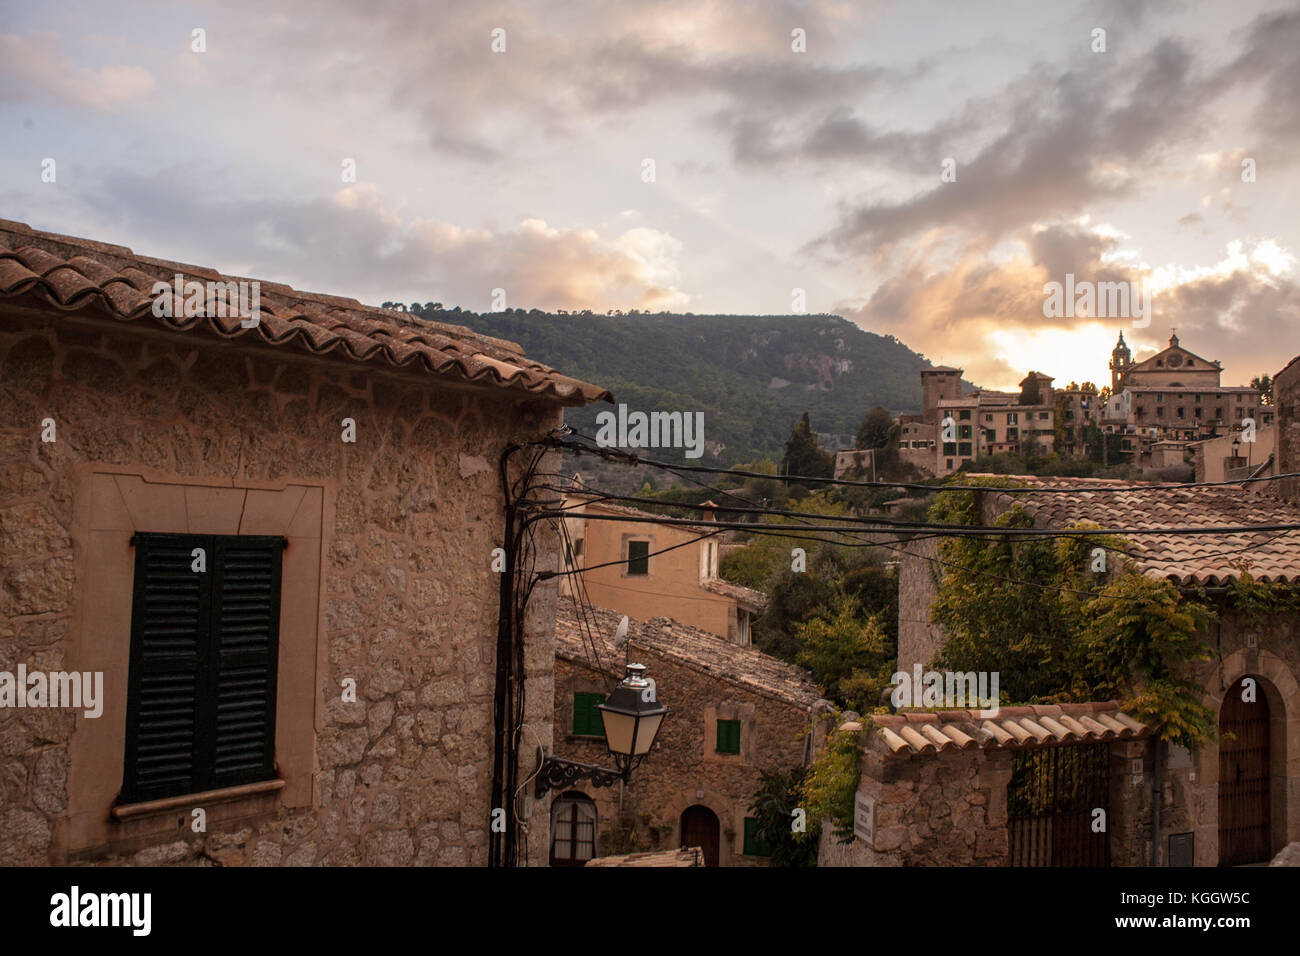 Roofs and telephone cables during a dramatic sunset in Valldemossa, Mallorca - Stock Image